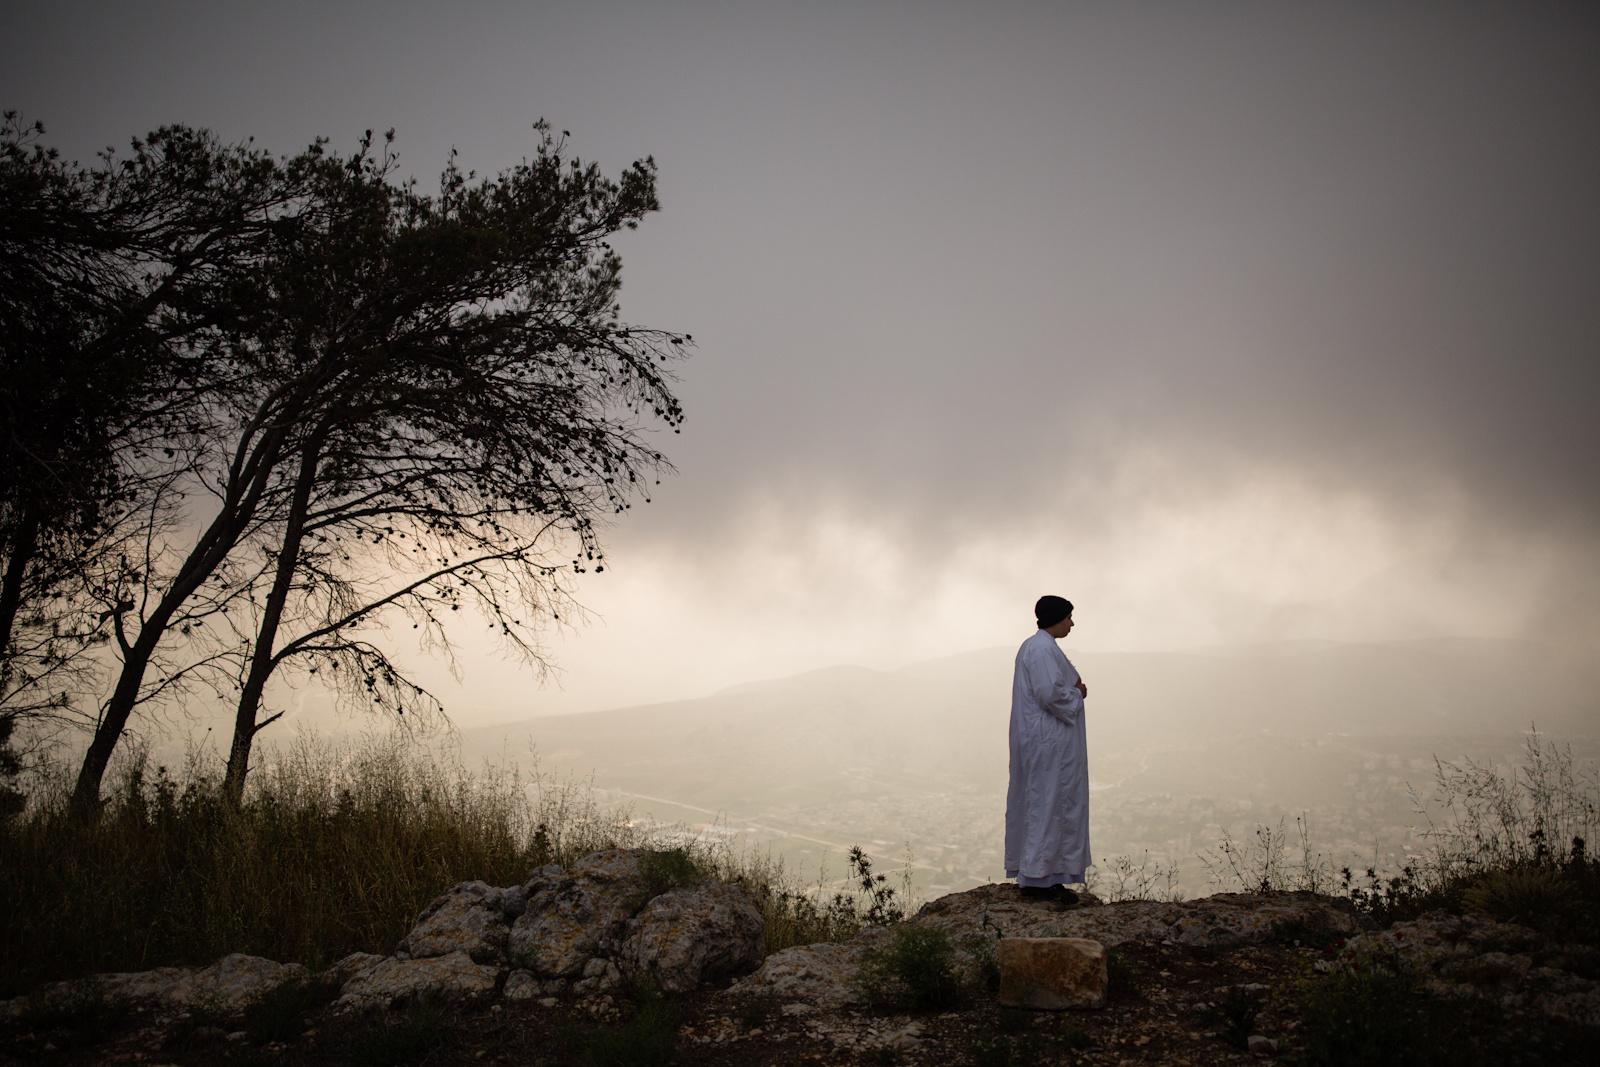 NABLUS, PALESTINIAN TERRITORIES - APRIL 27, 2016: Samaritans take part in a pilgrimage marking the holiday of Passover at Mount Gerizim on the outskirts of the West City of Nablus April 27, 2016. The Samaritans, who trace their roots to the Biblical kingdom of Israel in what is now the northern occupied West Bank, observe religious practices similar to those of Judaism.